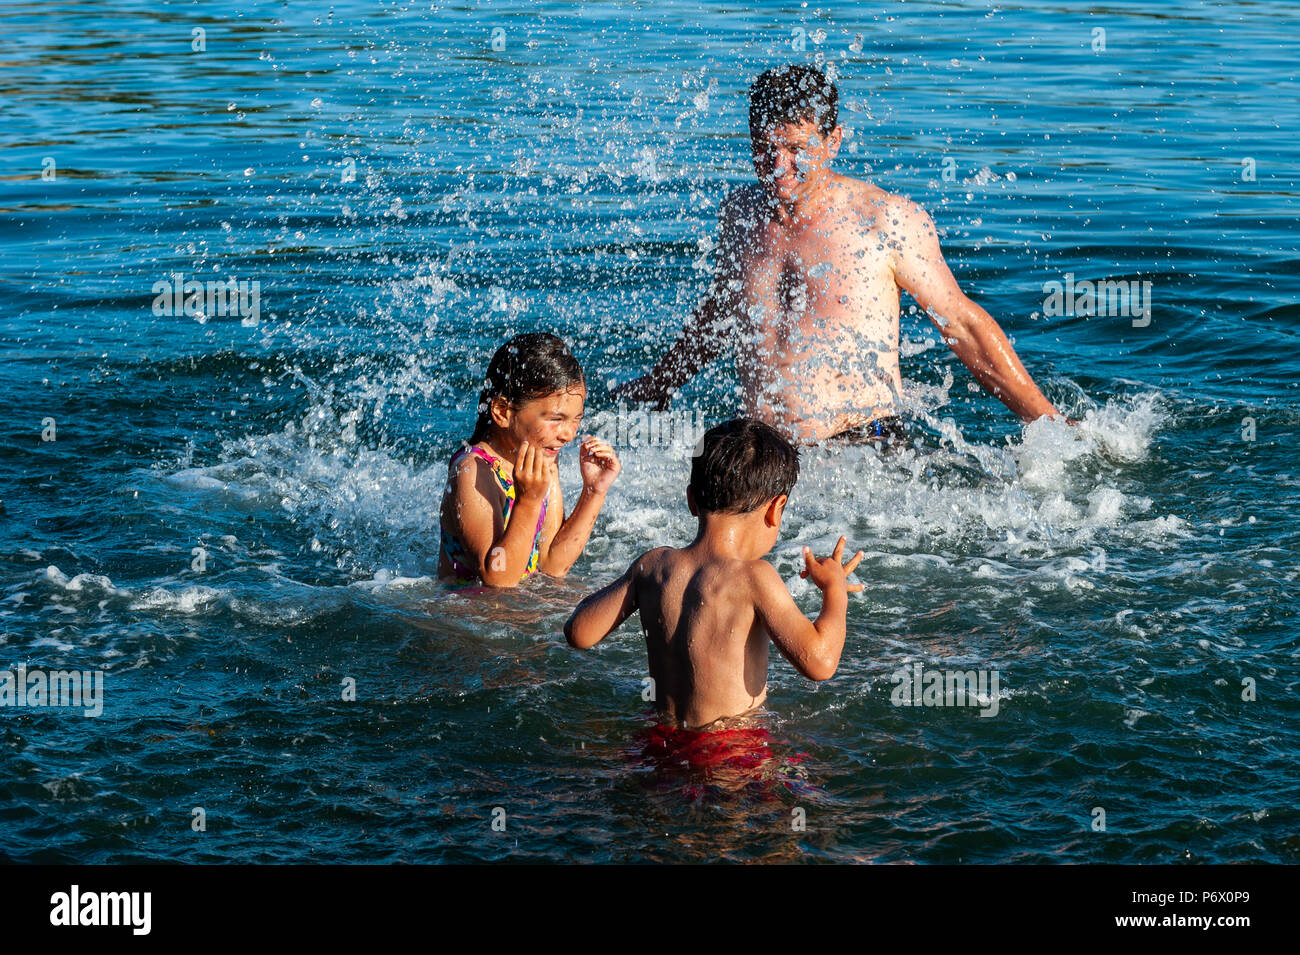 Schull, West Cork, Ireland . Michael O'Driscoll from Ballydehob plays with his children, Hannah, 7 and Patrick, 5, in the sea this evening. The heatwave shows no sign of ending with temperatures forecast to be in the high 20°'s Celsius for at least a week. Credit: Andy Gibson/Alamy Live News. - Stock Image